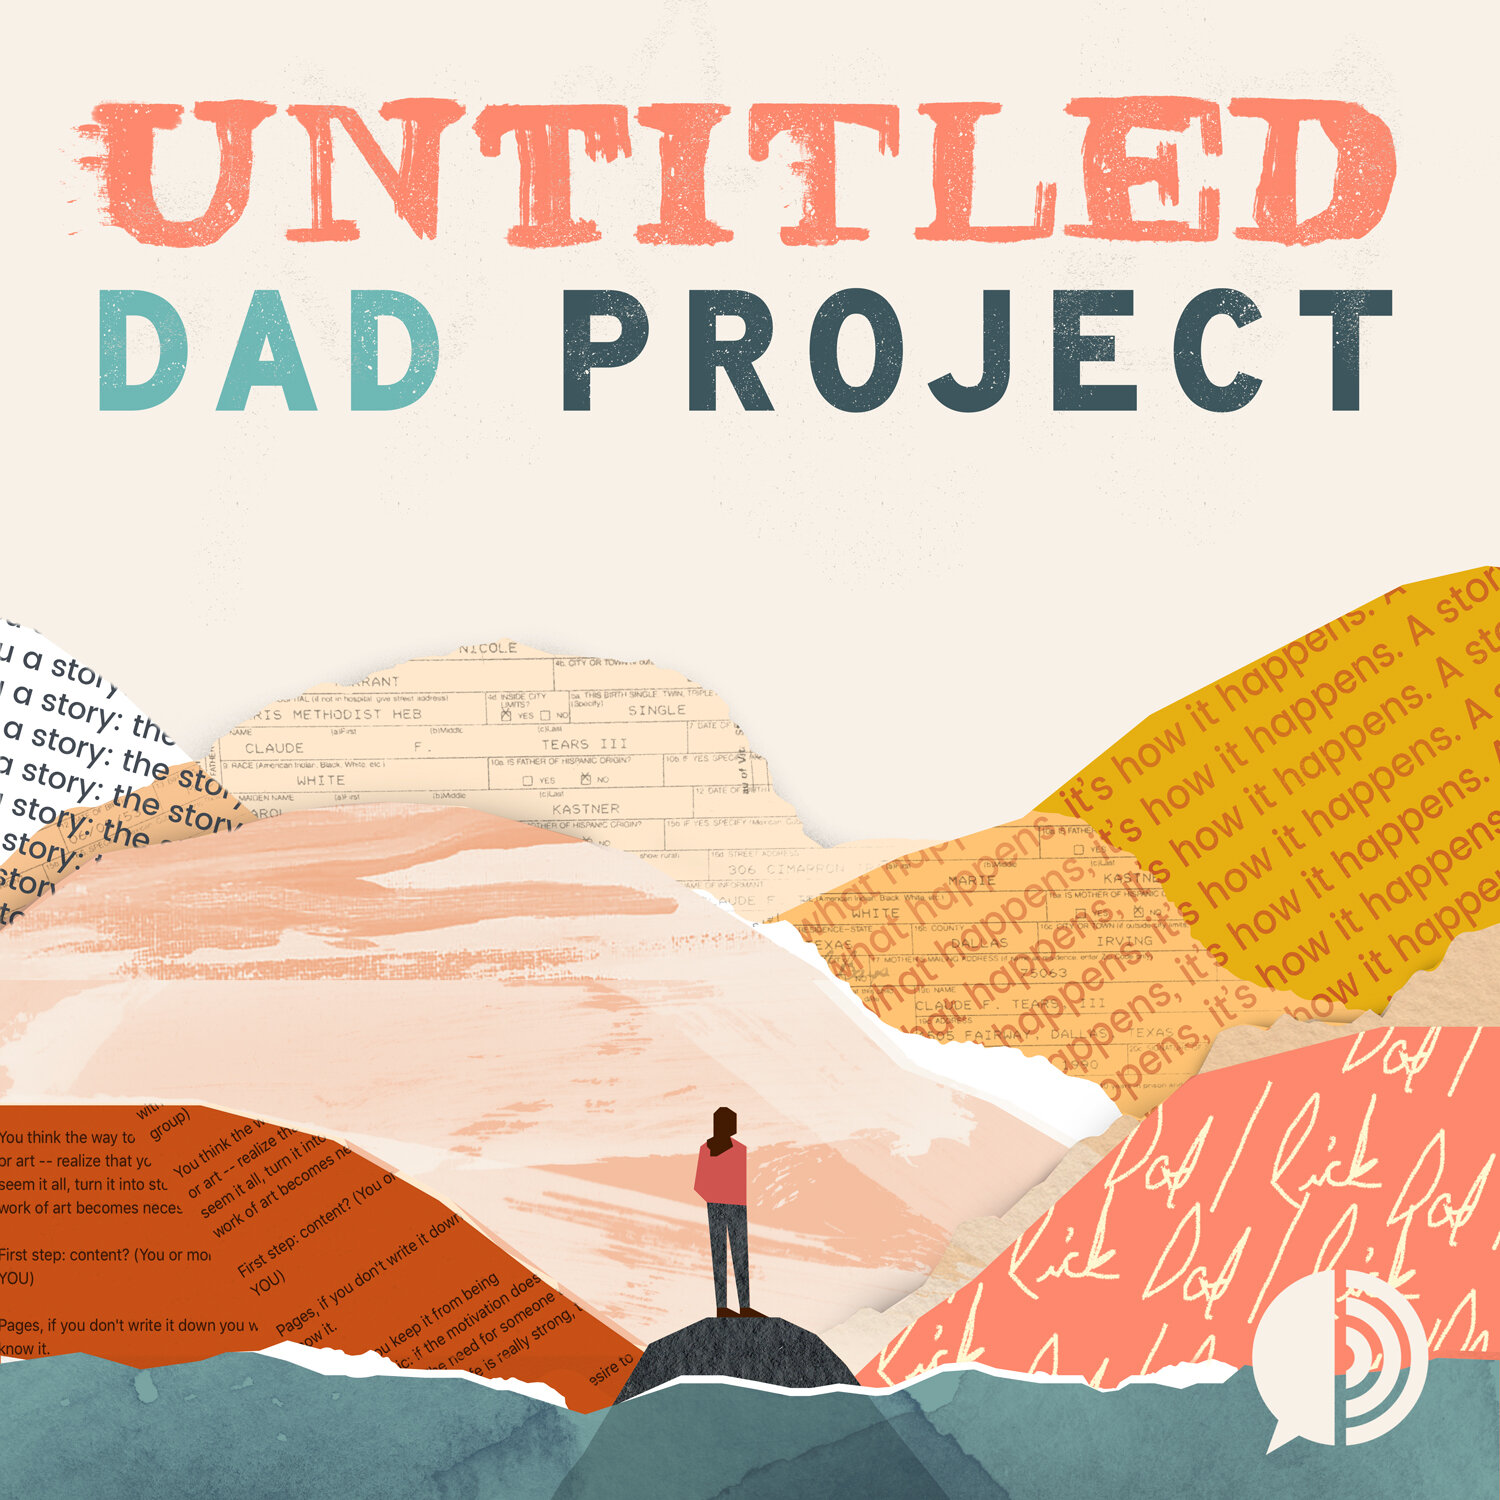 UNTITLED-DAD-PROJECT-R3.jpg